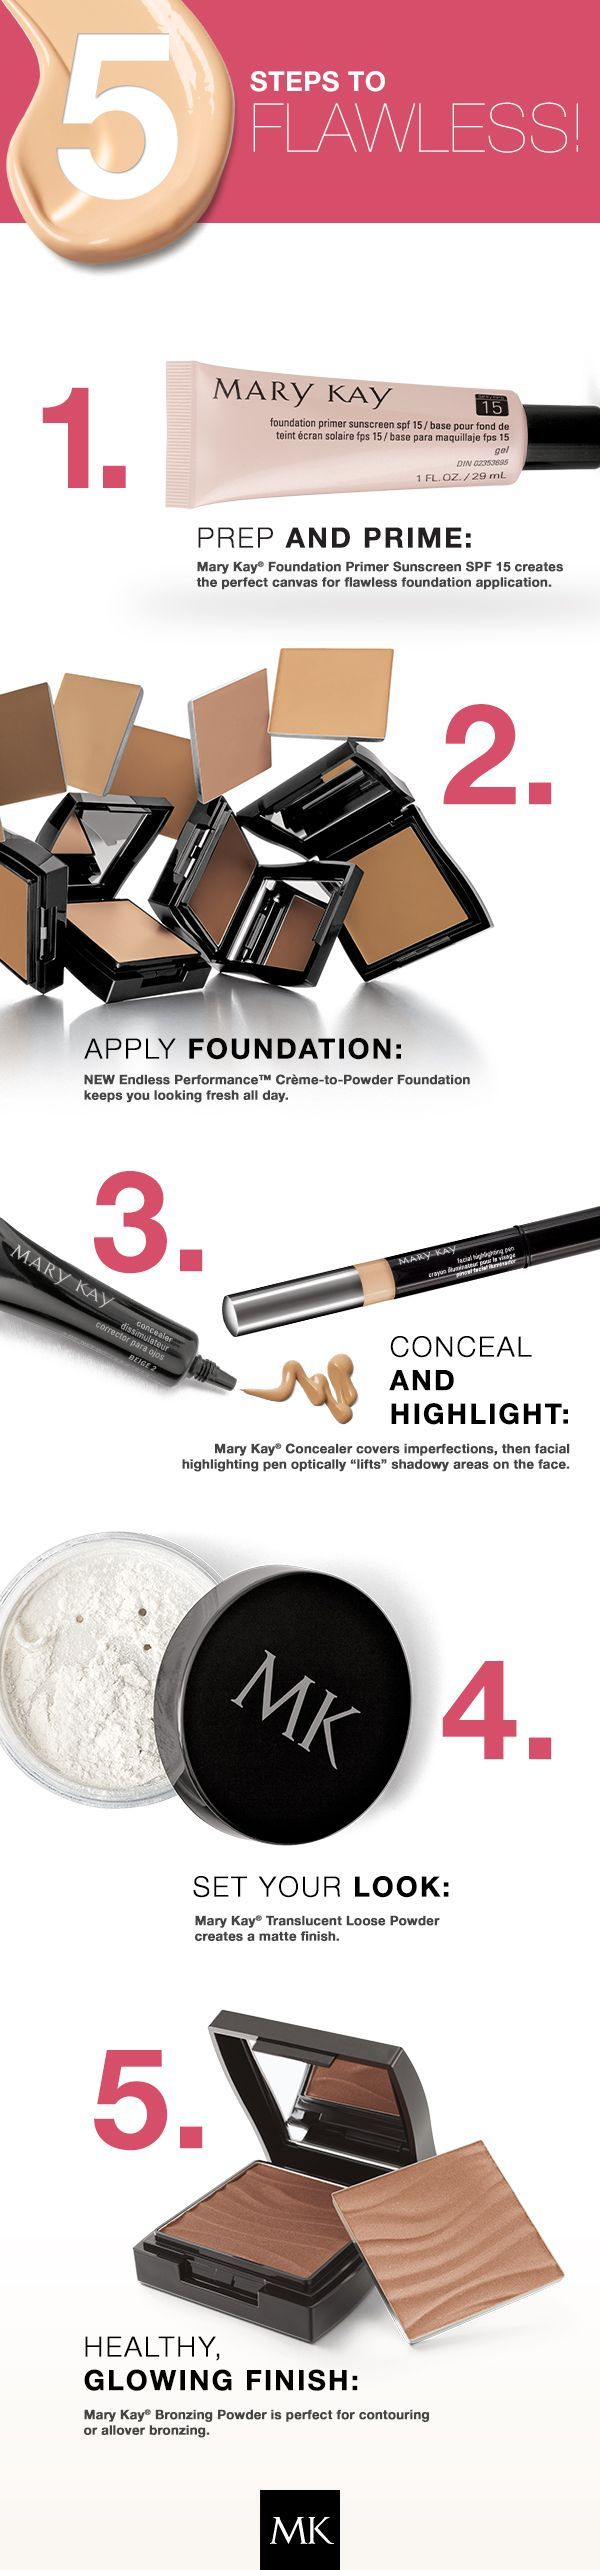 Mary Kay makeup NEW AND BEAUTIFUL!!!! As a #Mary Kay #beauty consultant I can help you, www.marykay.com/norquissanabria Call or text today for a very special discount 407-310-4861